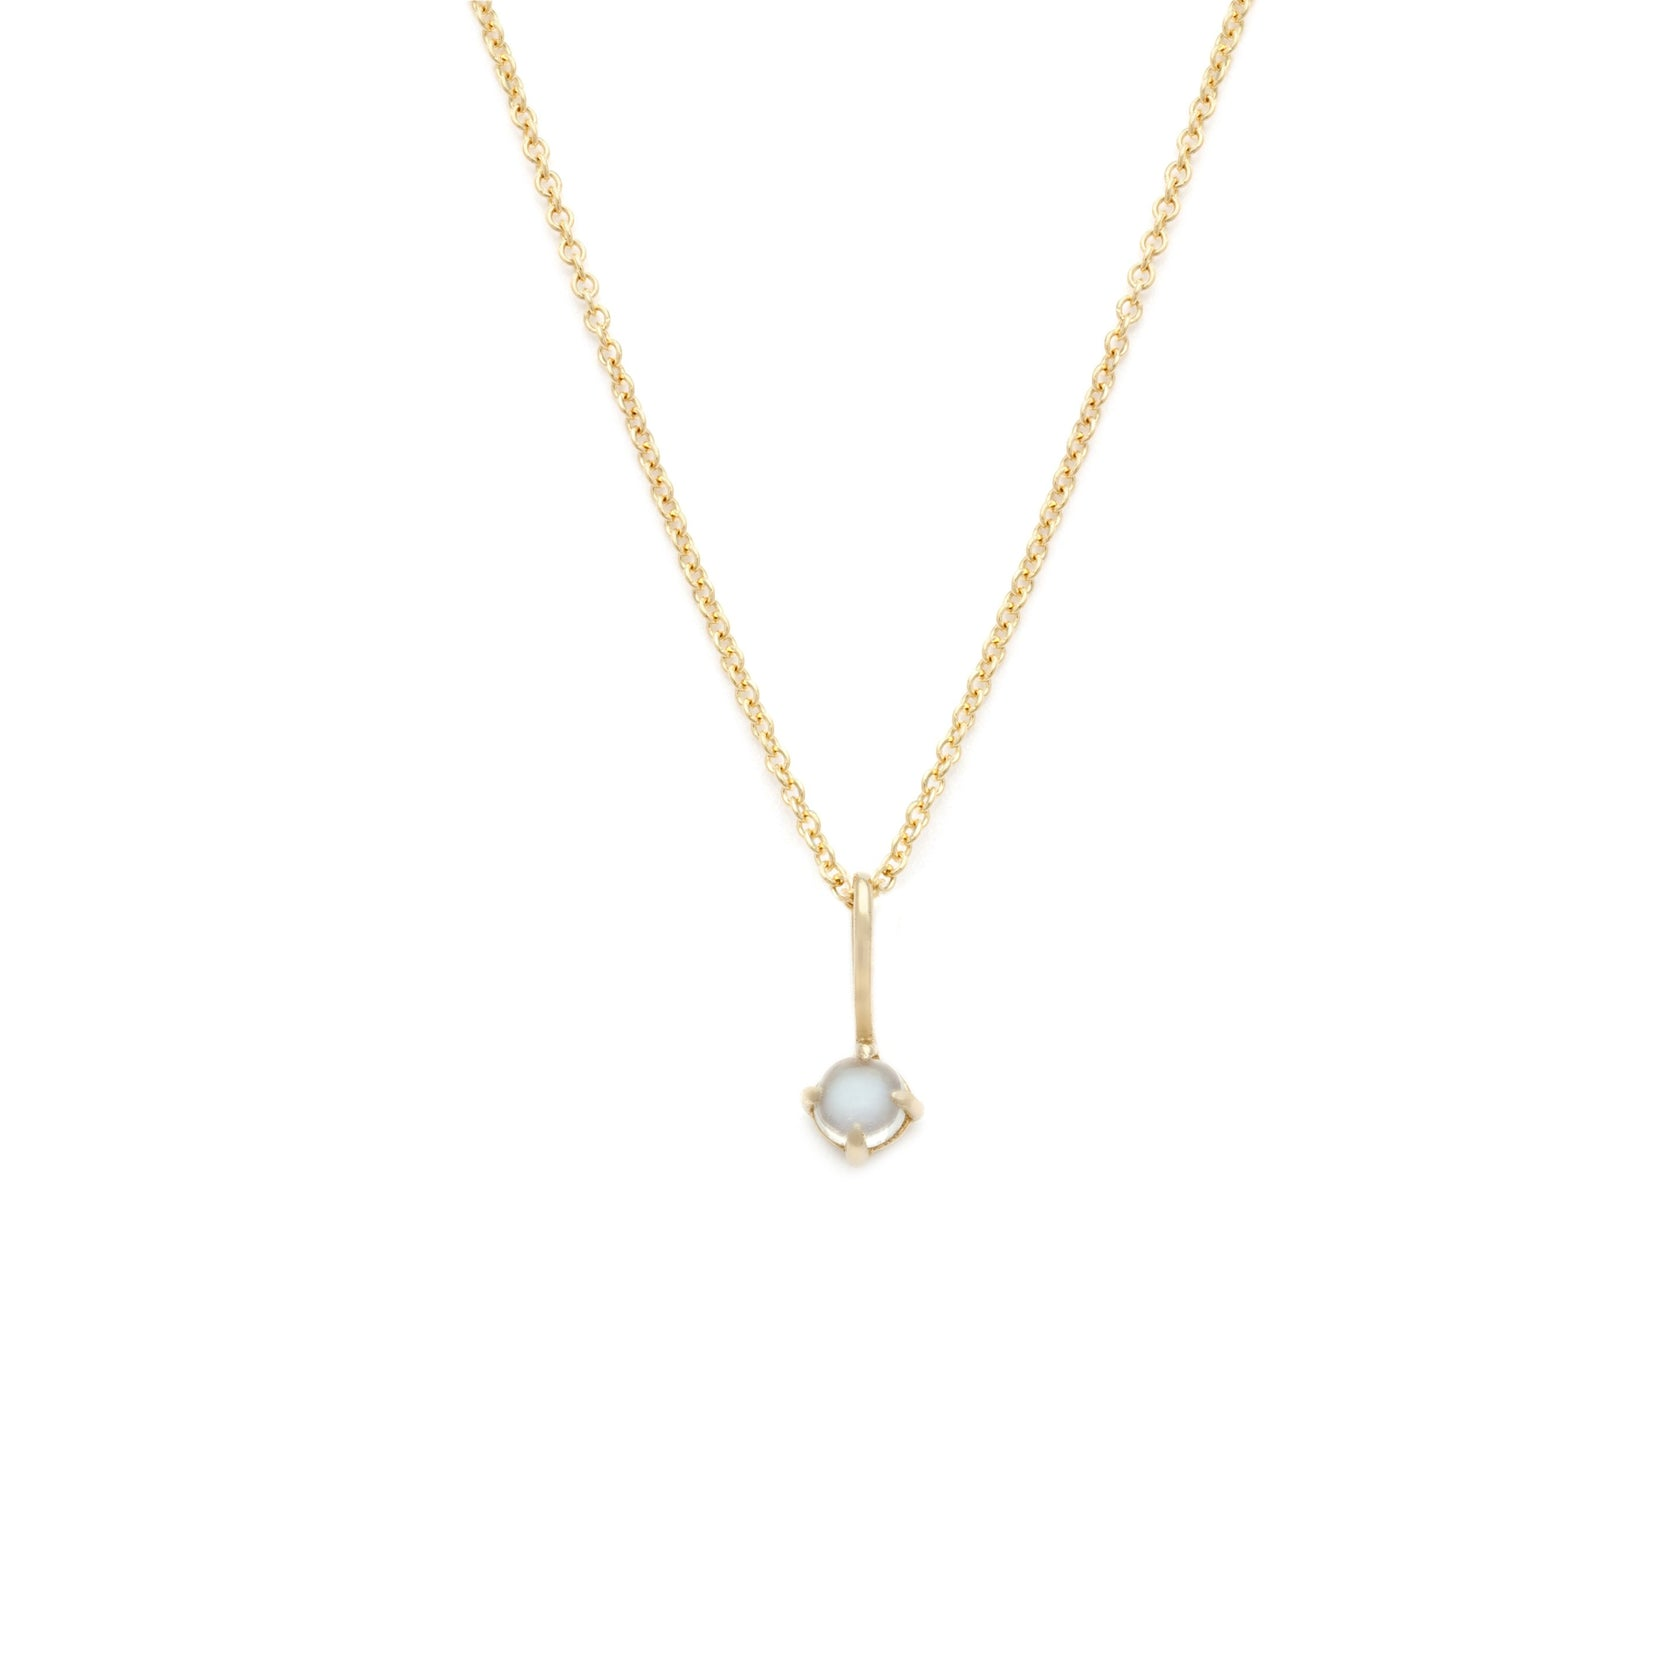 Coveted Moonstone Pendant - 14k Solid Gold